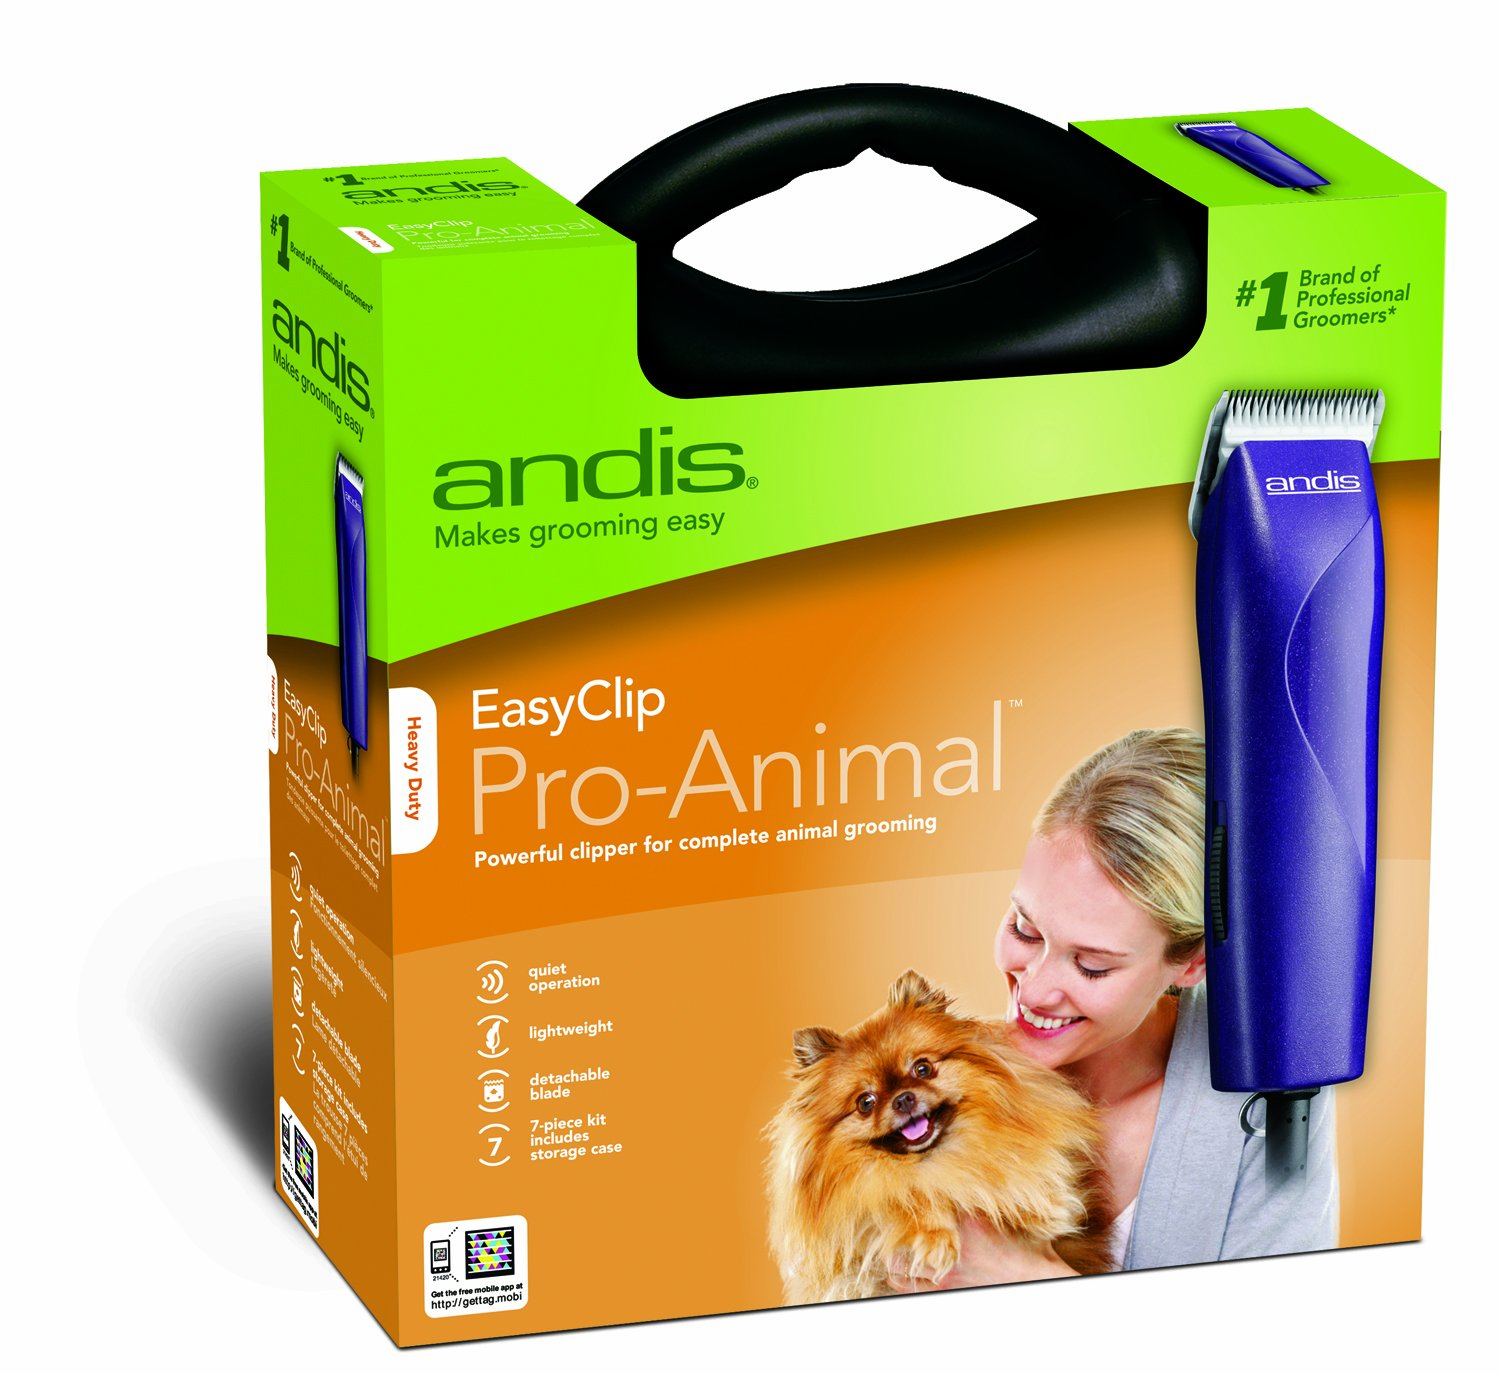 Andis pro-animal clipper review